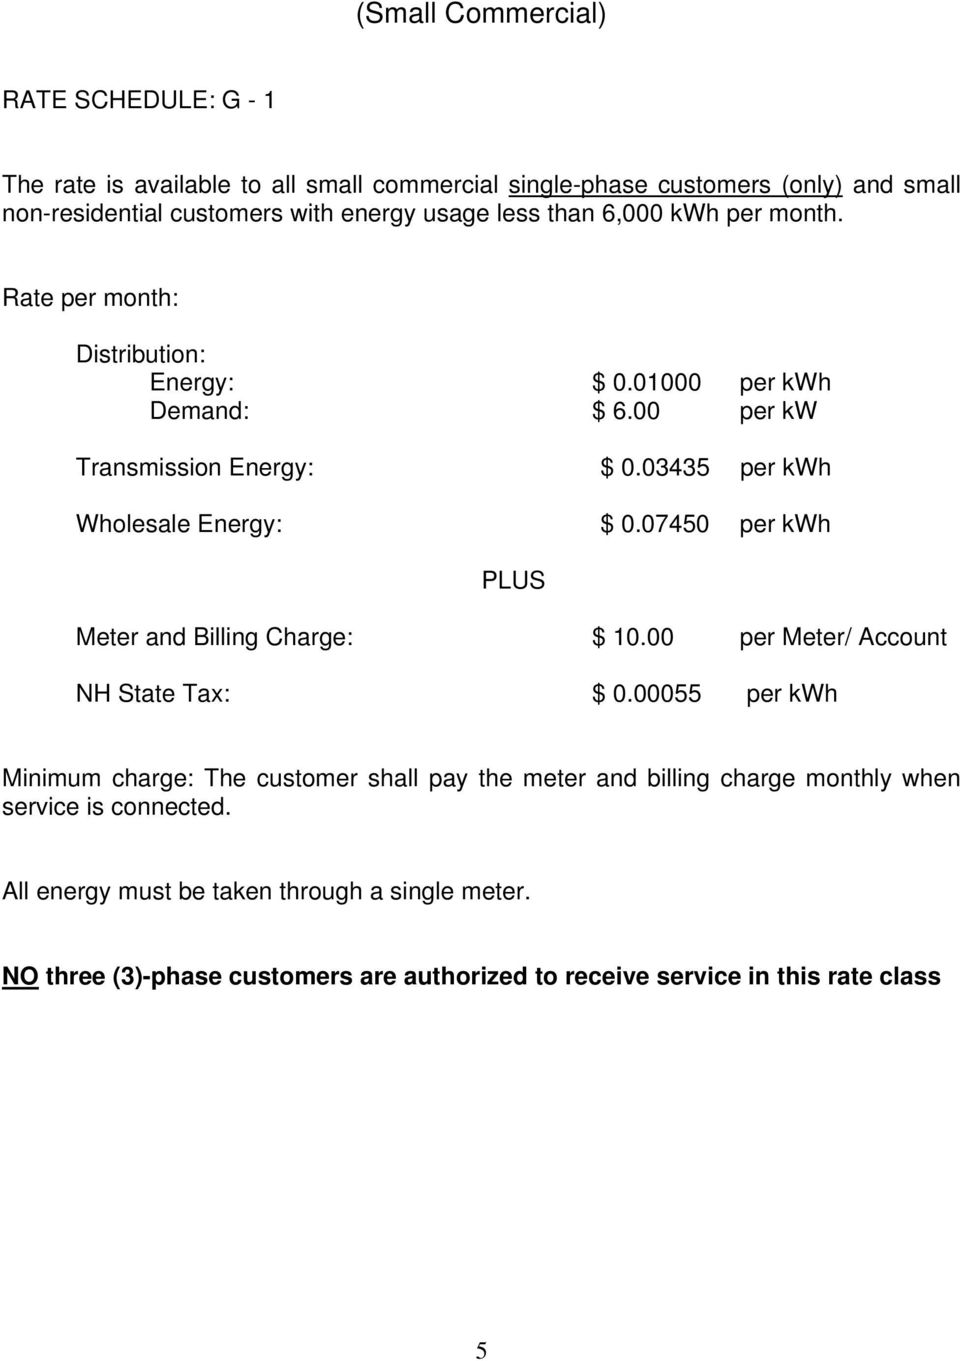 00 per kw Transmission Energy: $ 0.03435 per kwh Wholesale Energy: $ 0.07450 per kwh Meter and Billing Charge: $ 10.